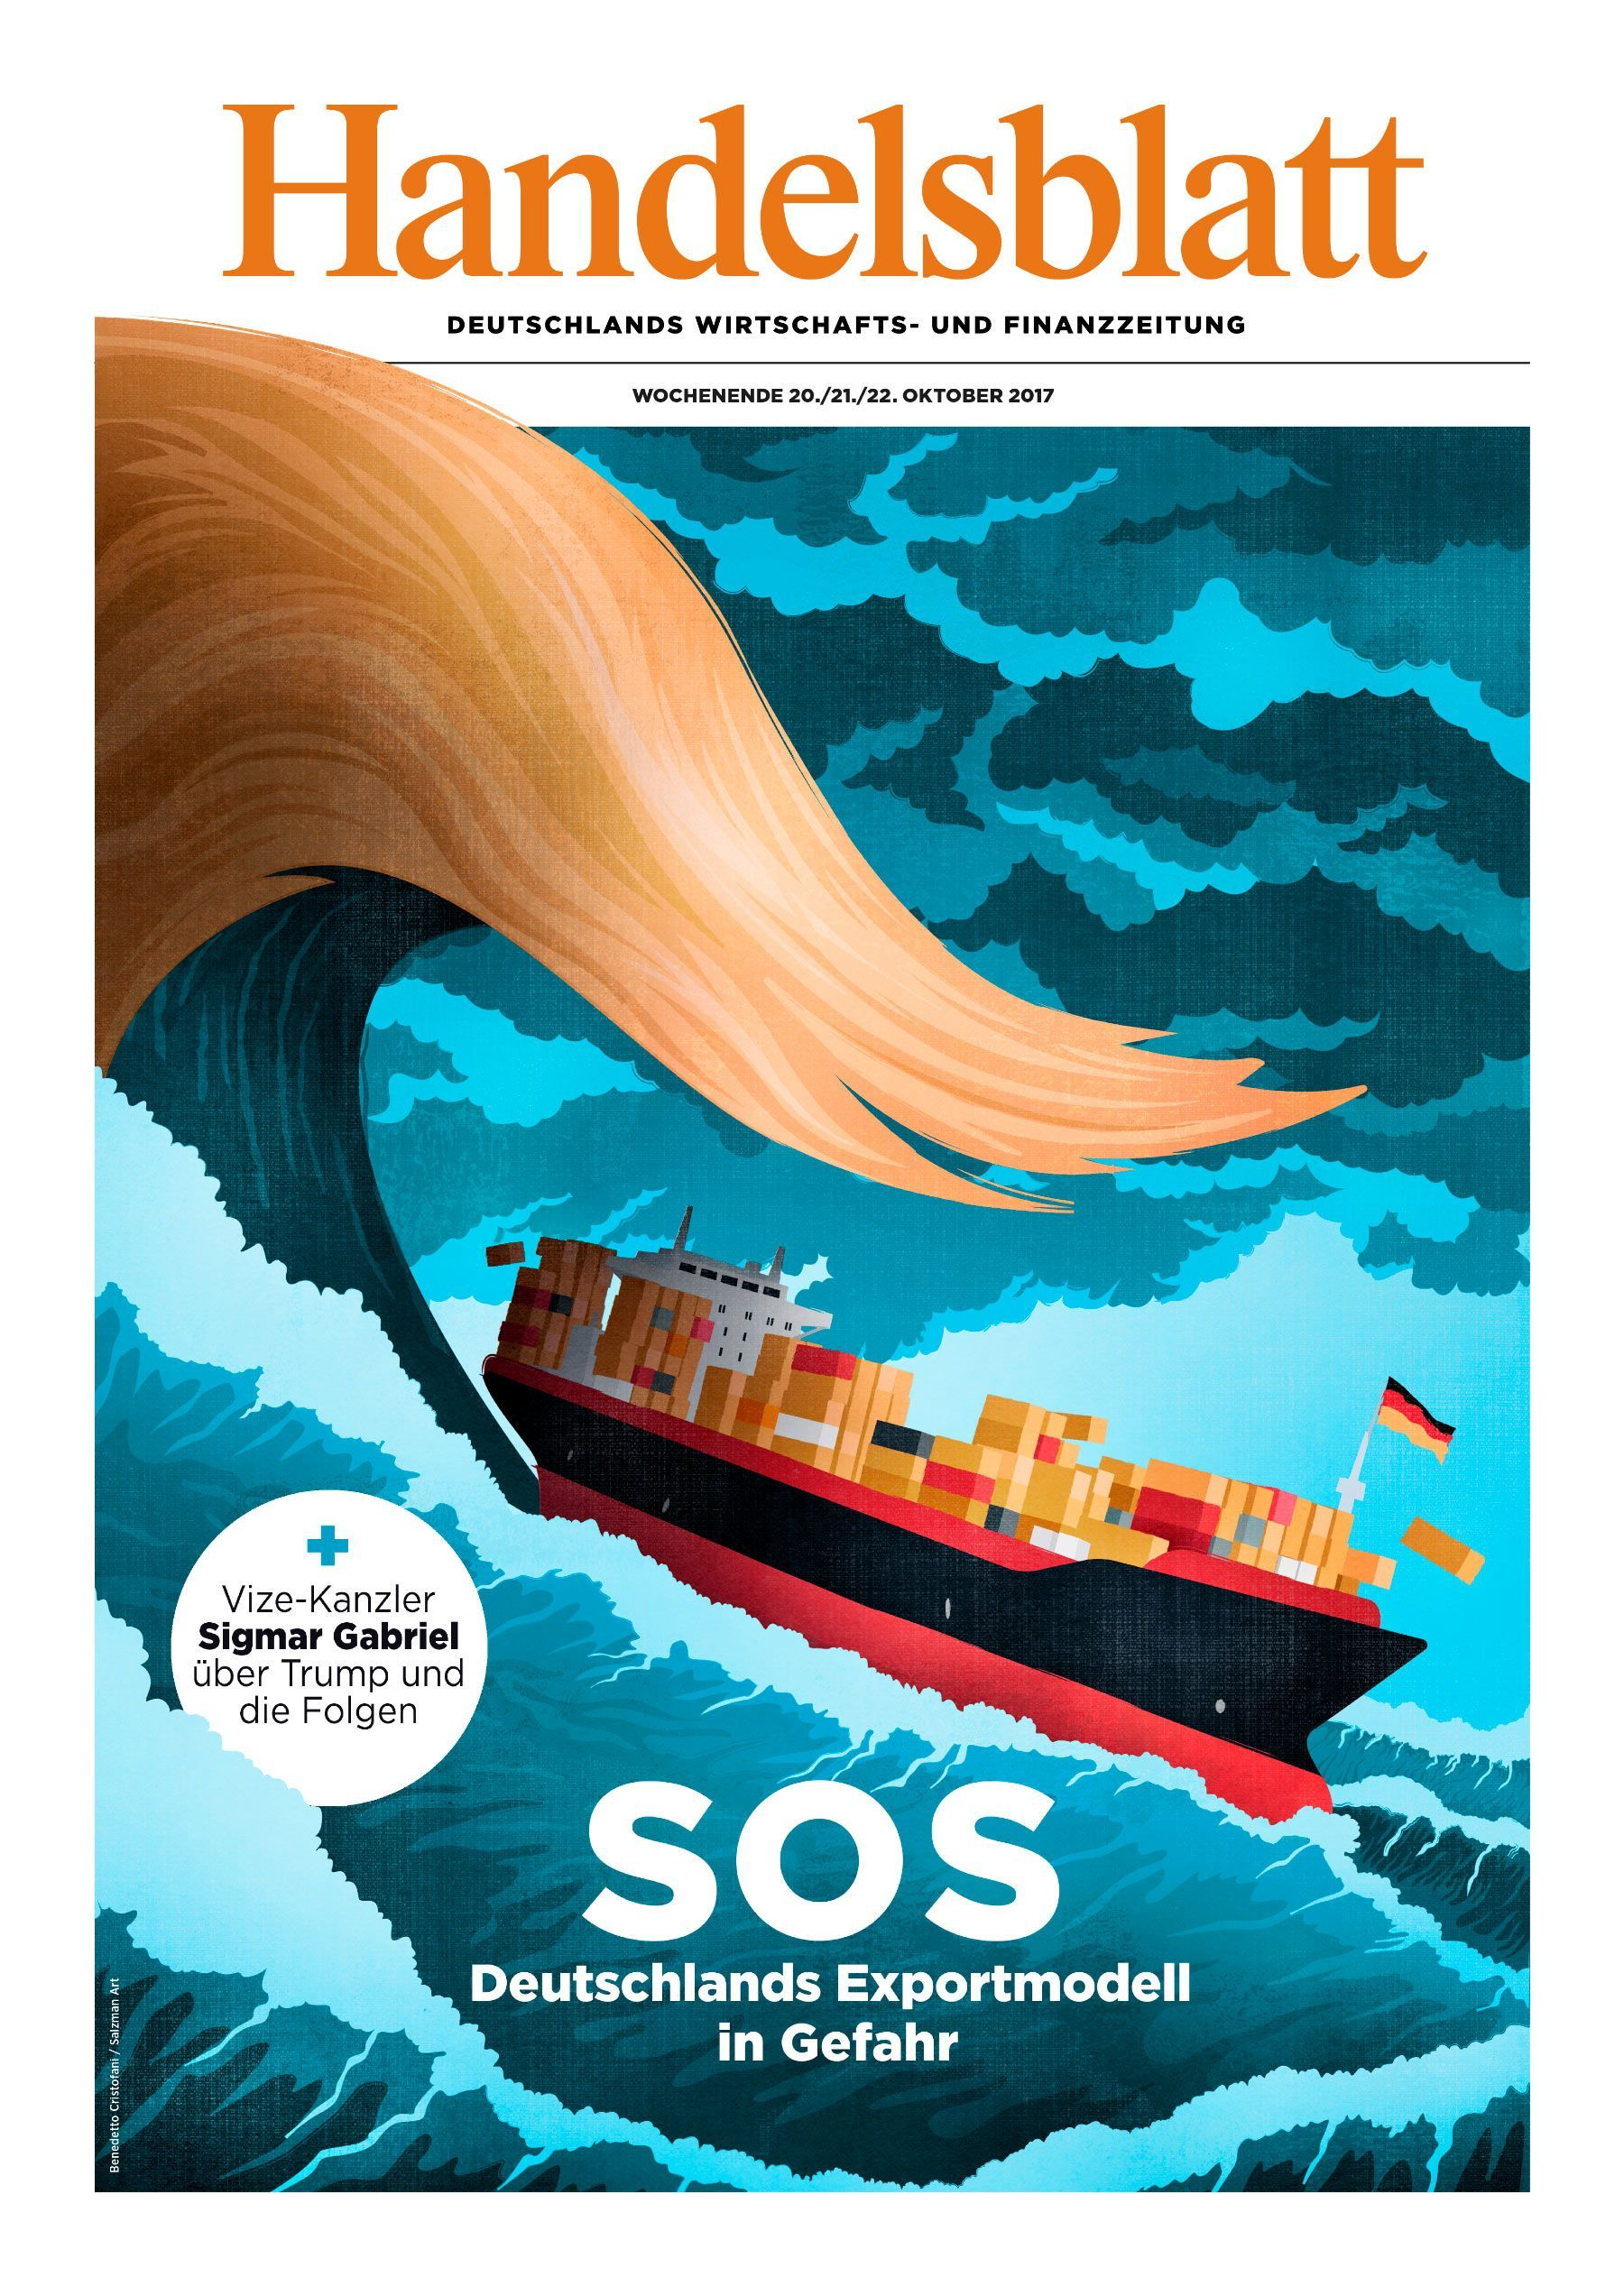 Benedetto Cristofani s latest cover illustration for German economic magazine Handelsblatt ac panied a feature about how Trump is menacing the German